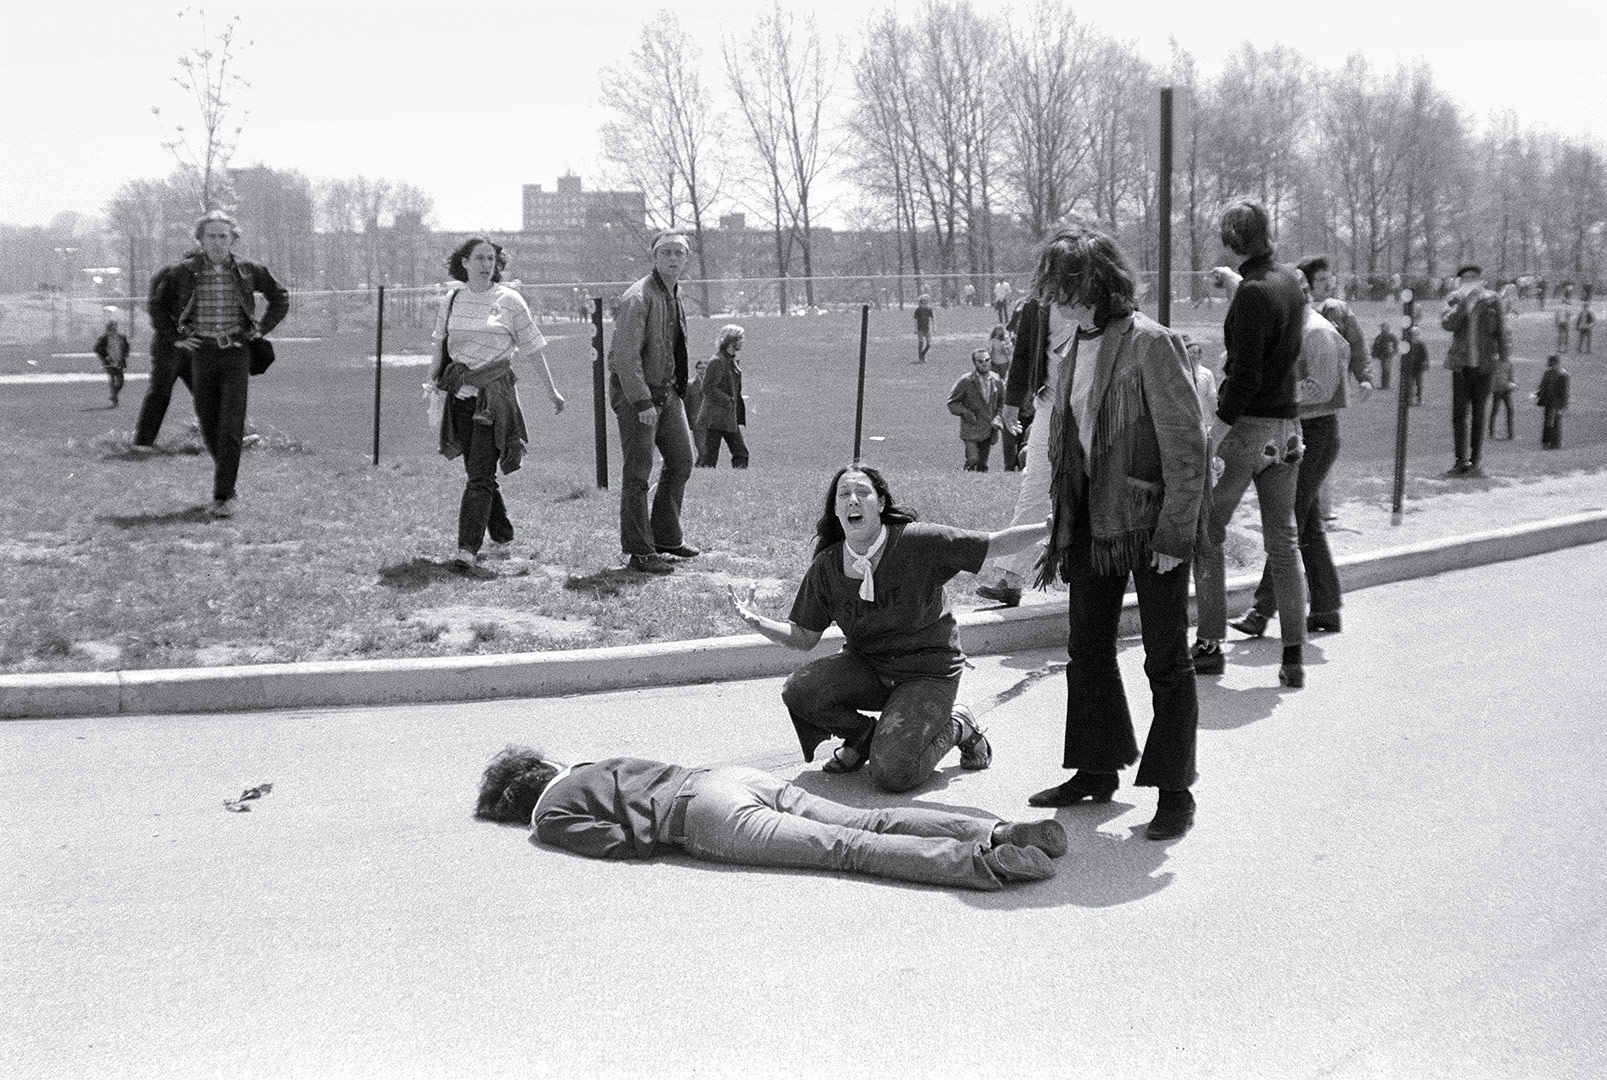 14 year old runaway Mary Ann Vecchio kneeling over the body of Jeffrey Miller who had been fatally shot minutes before. (John Filo, Valley Daily News)